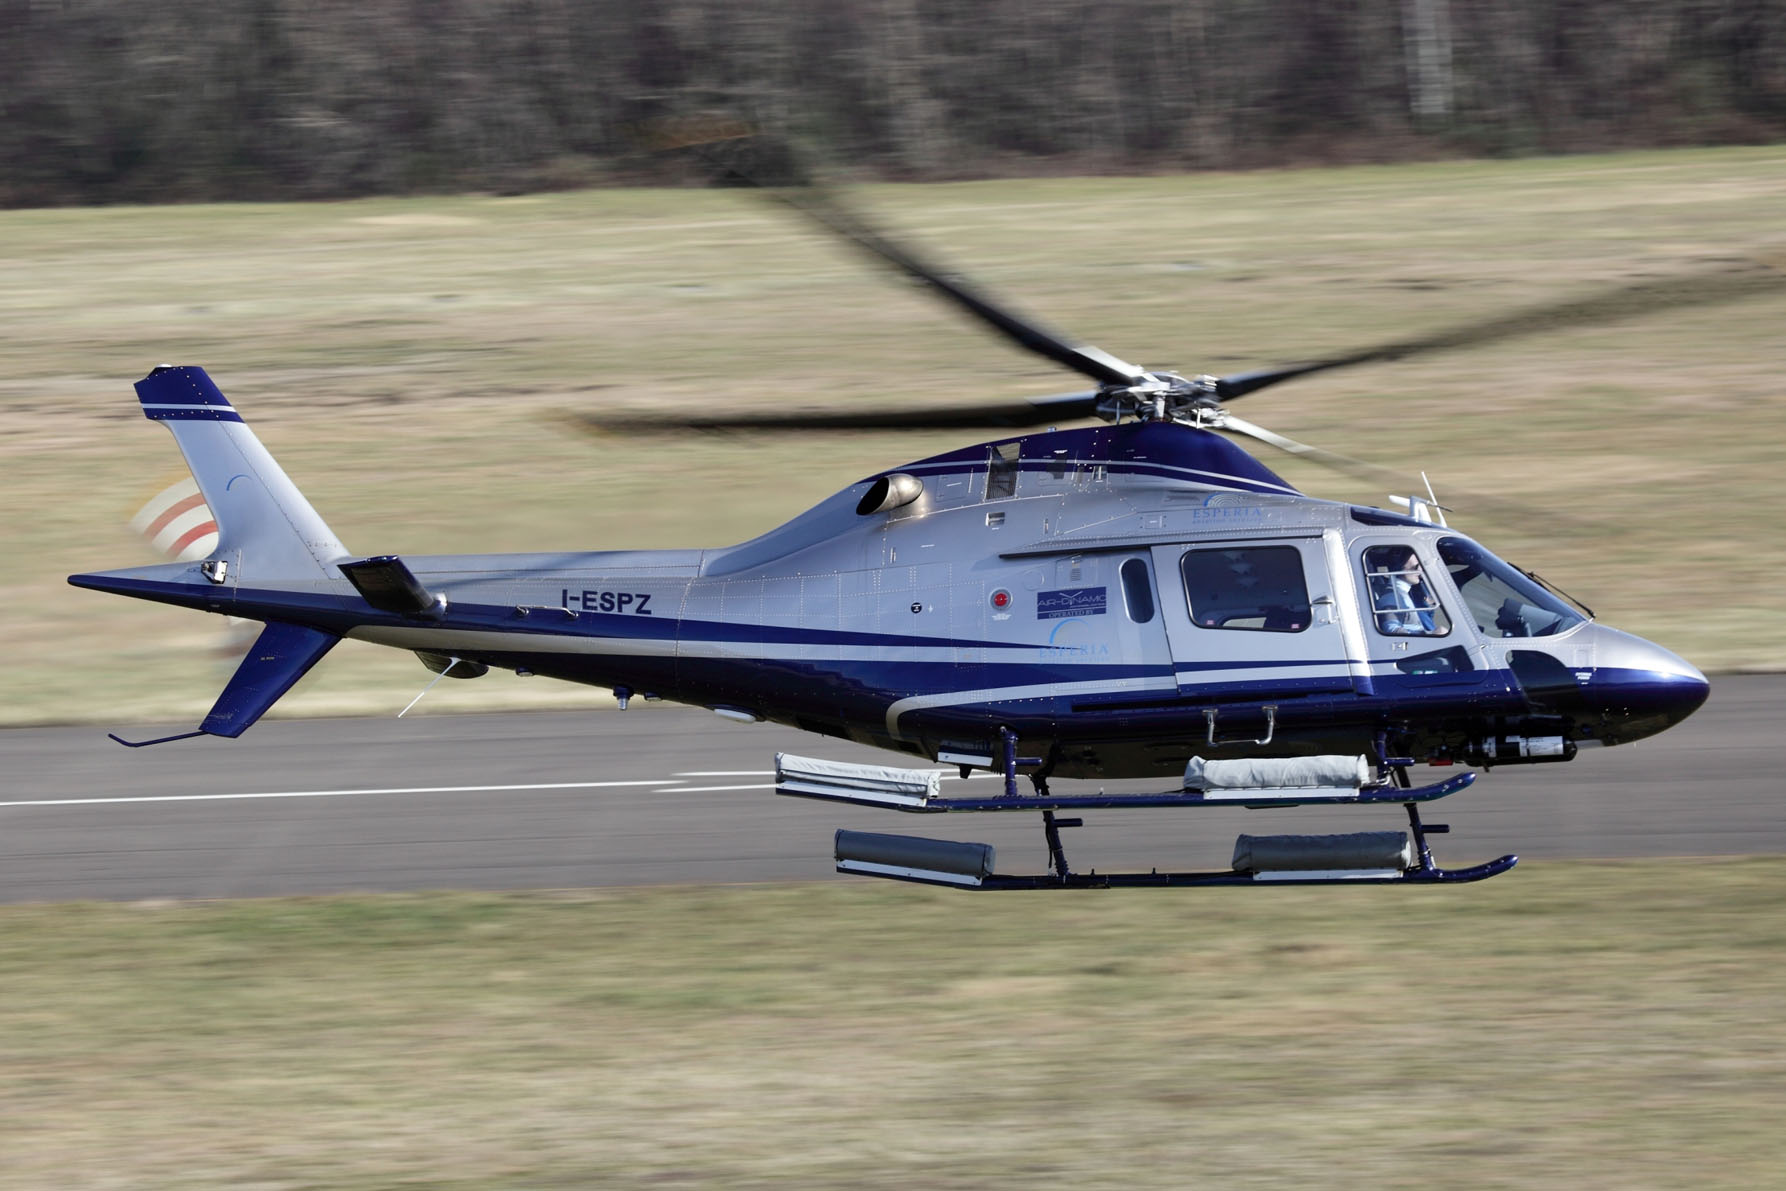 AW119Ke helicopter for CPI Group